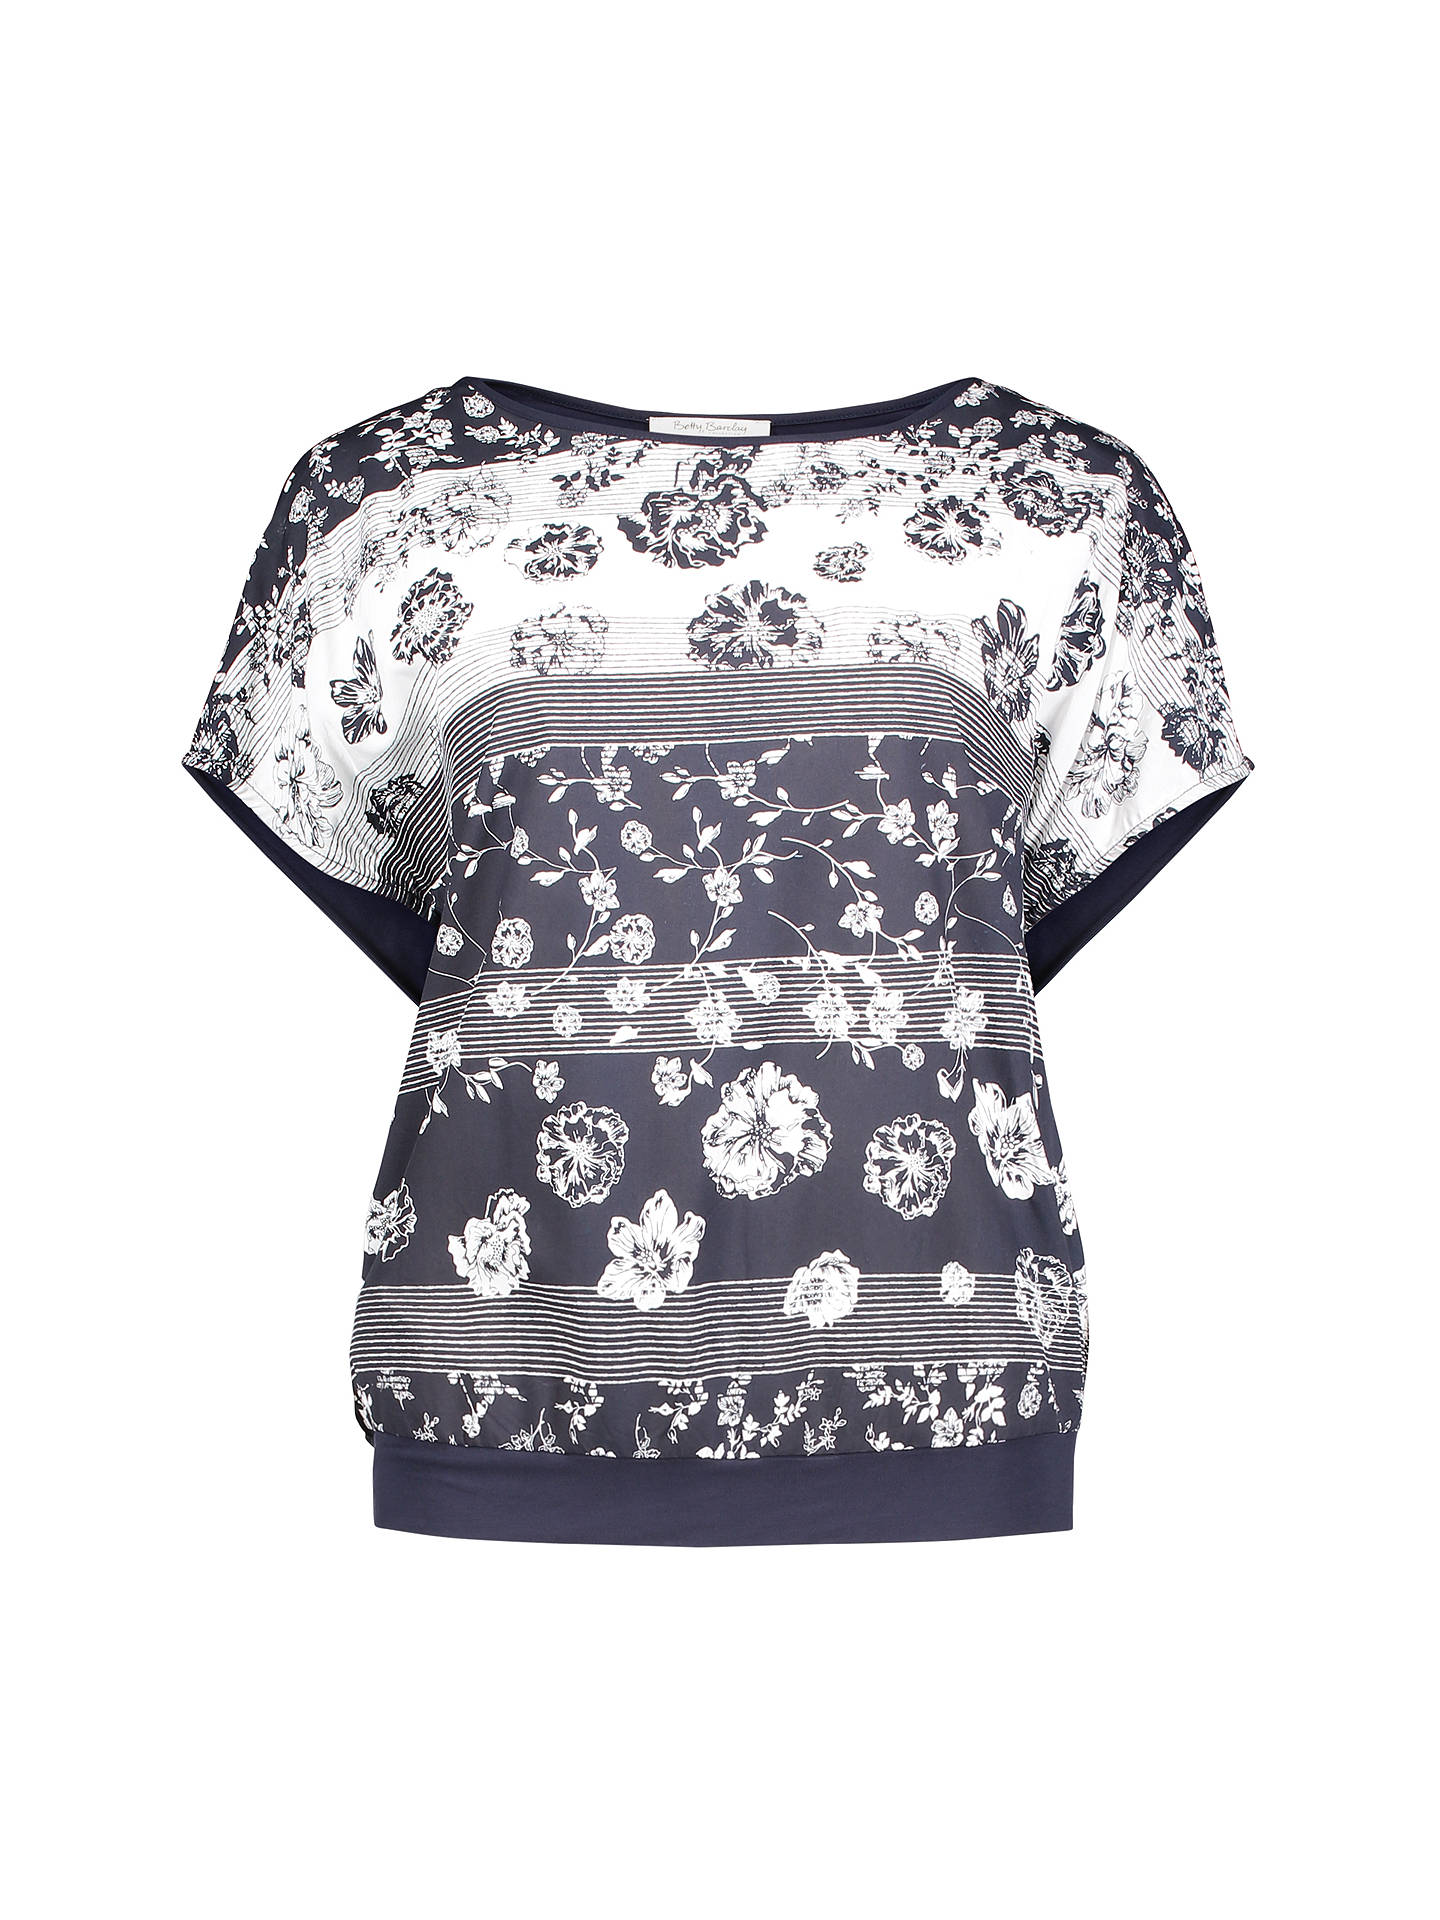 BuyBetty Barclay Graphic Floral Print T-Shirt, Dark Blue/Cream, 10 Online at johnlewis.com